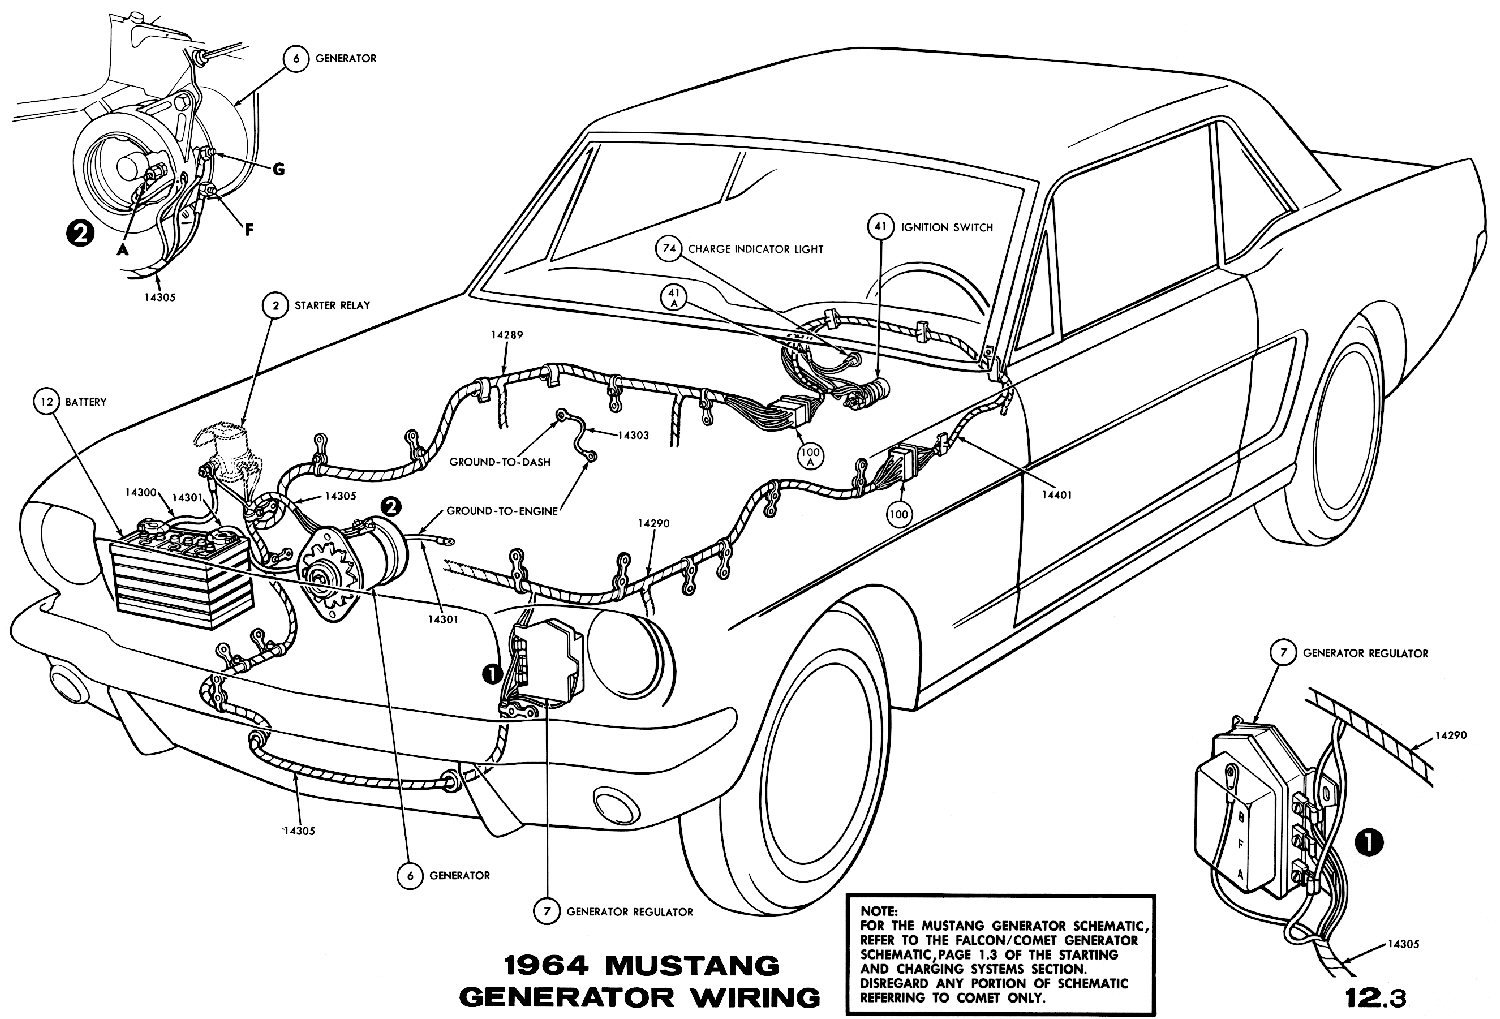 1964f 1964 mustang wiring diagrams average joe restoration 68 Mustang Wiring Diagram at webbmarketing.co